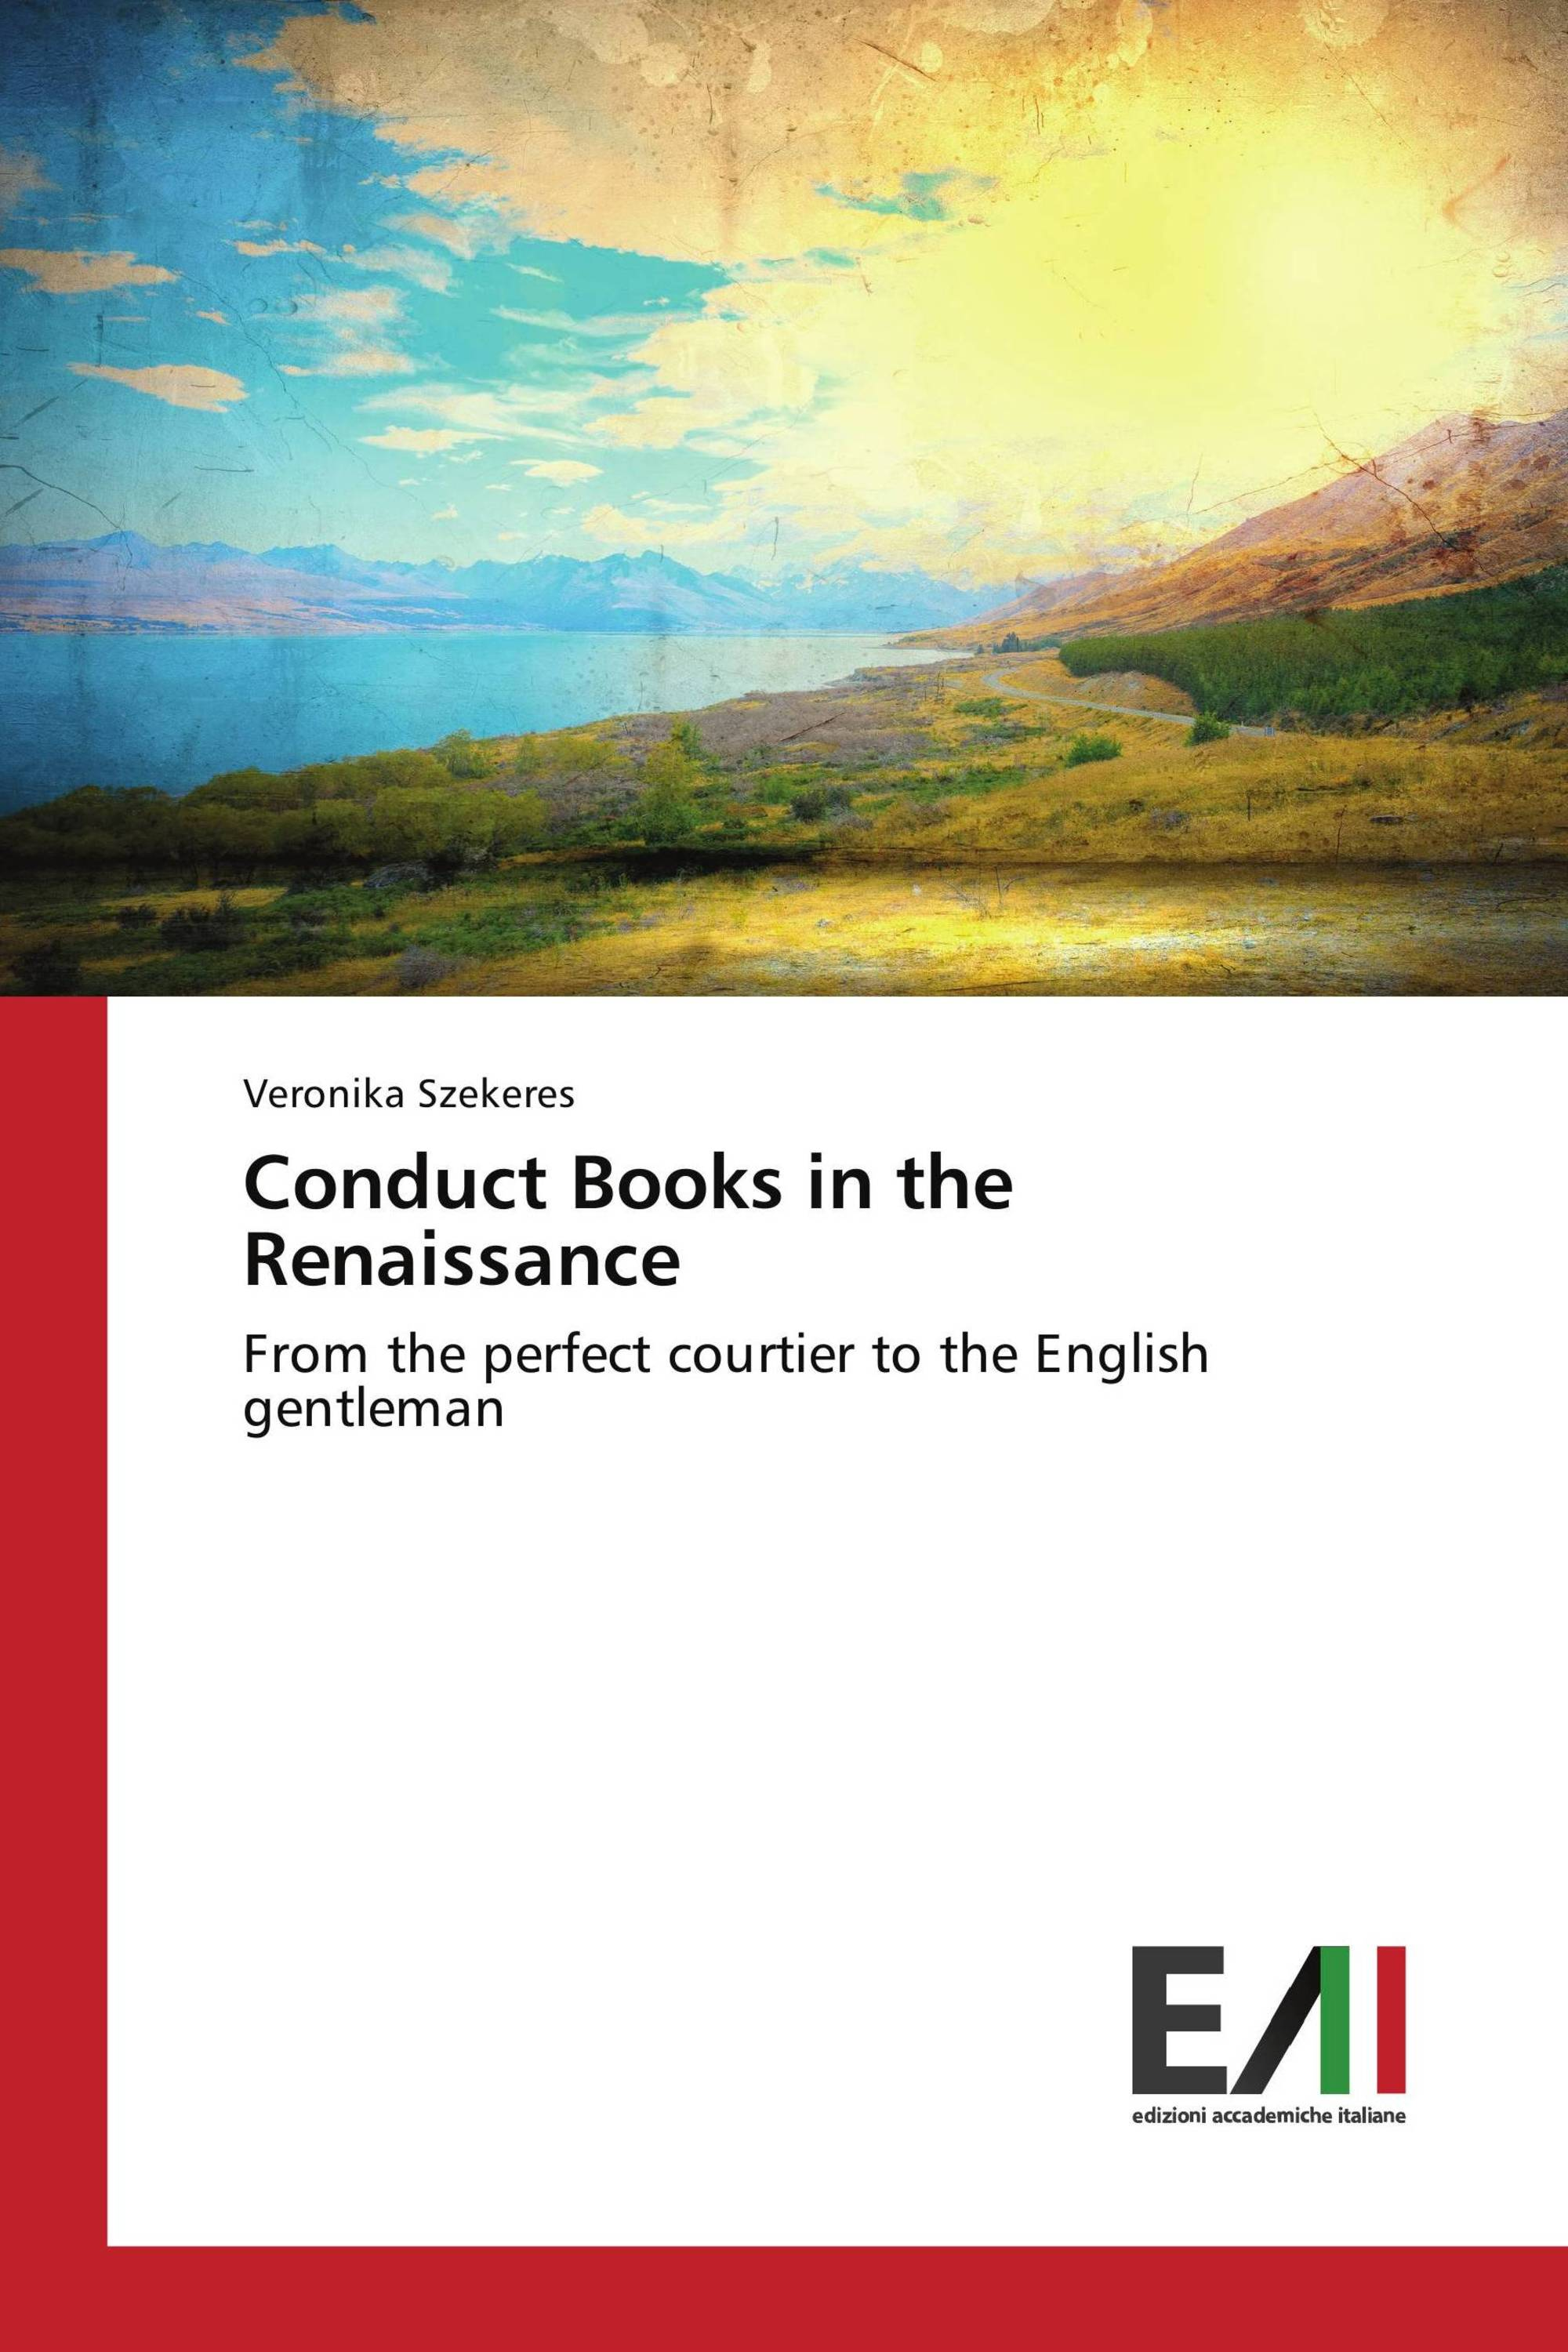 conduct books